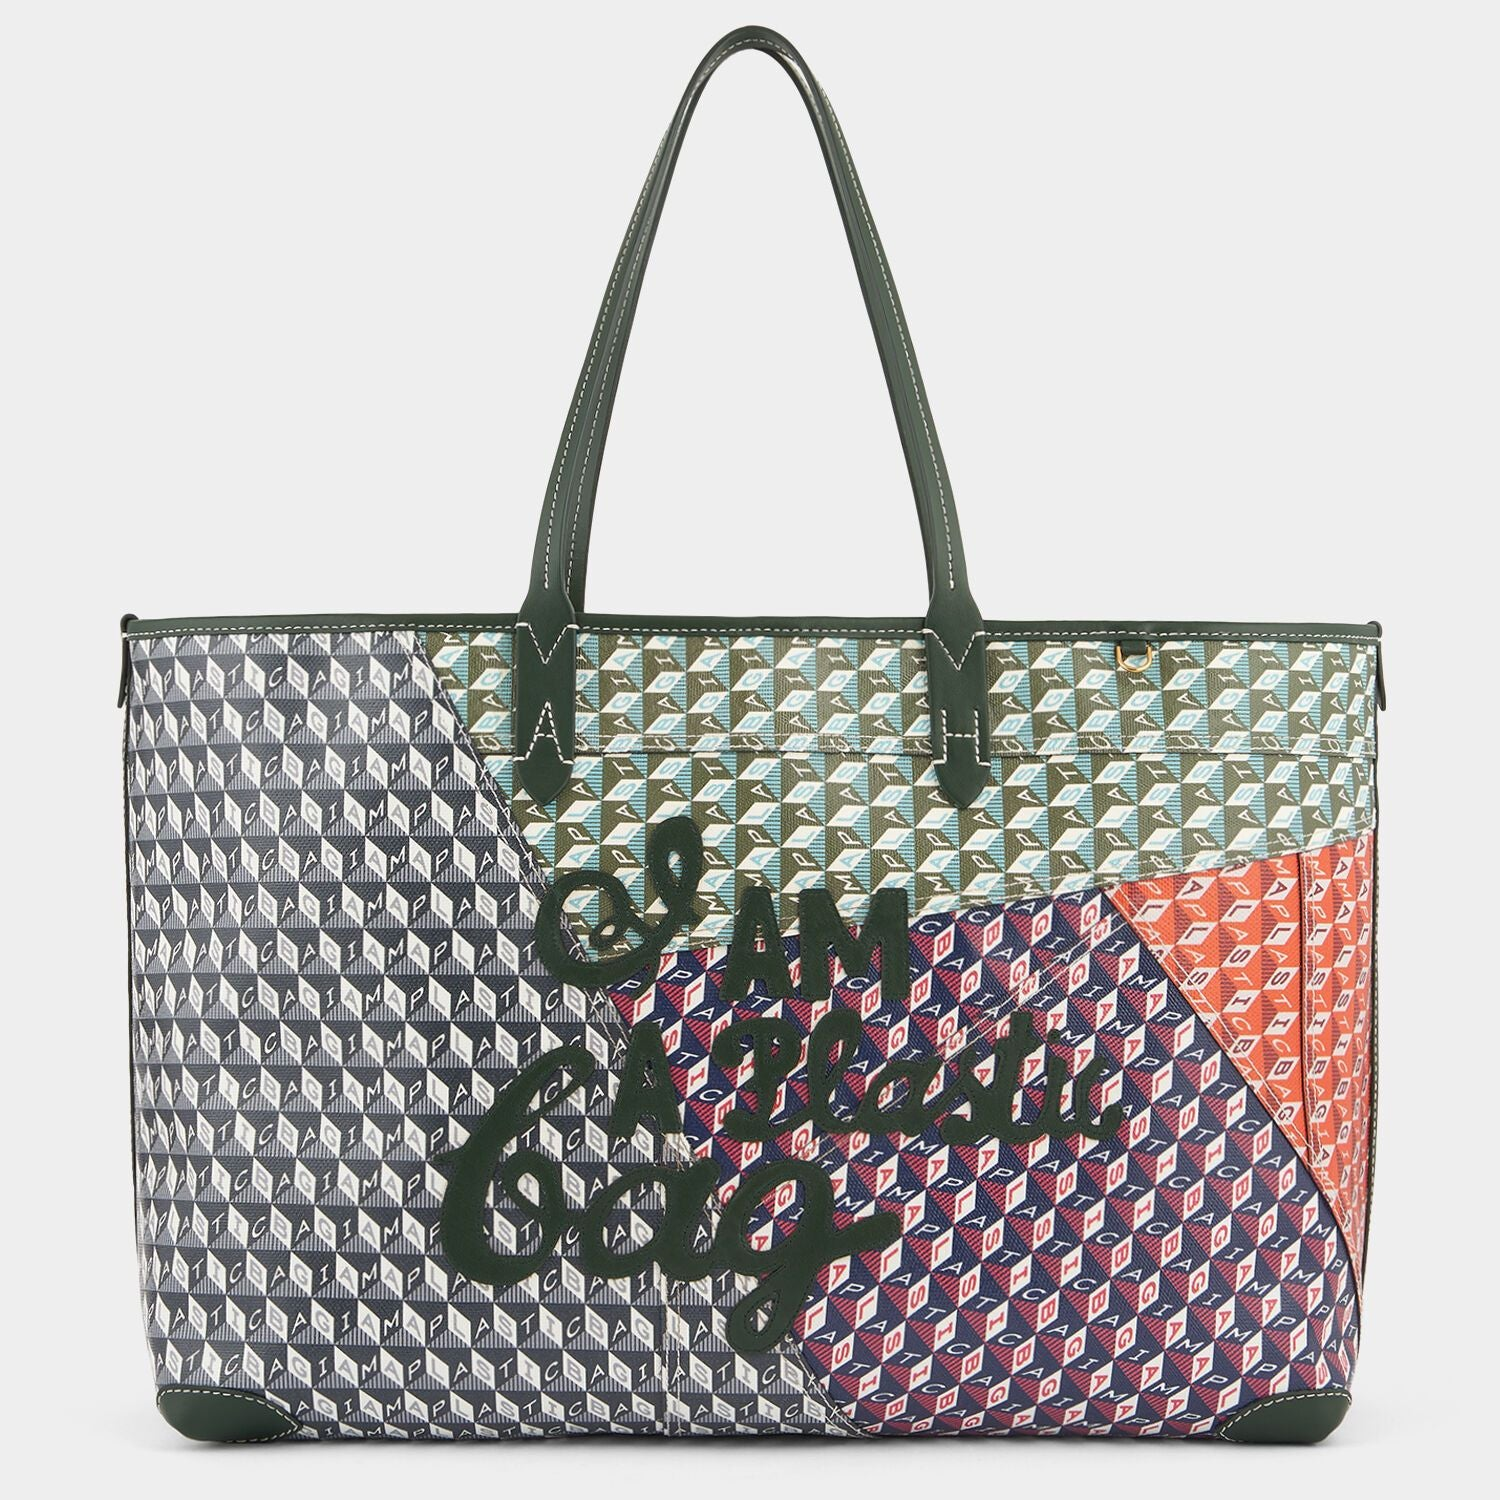 Patchwork I AM A Plastic Bag Motif Tote